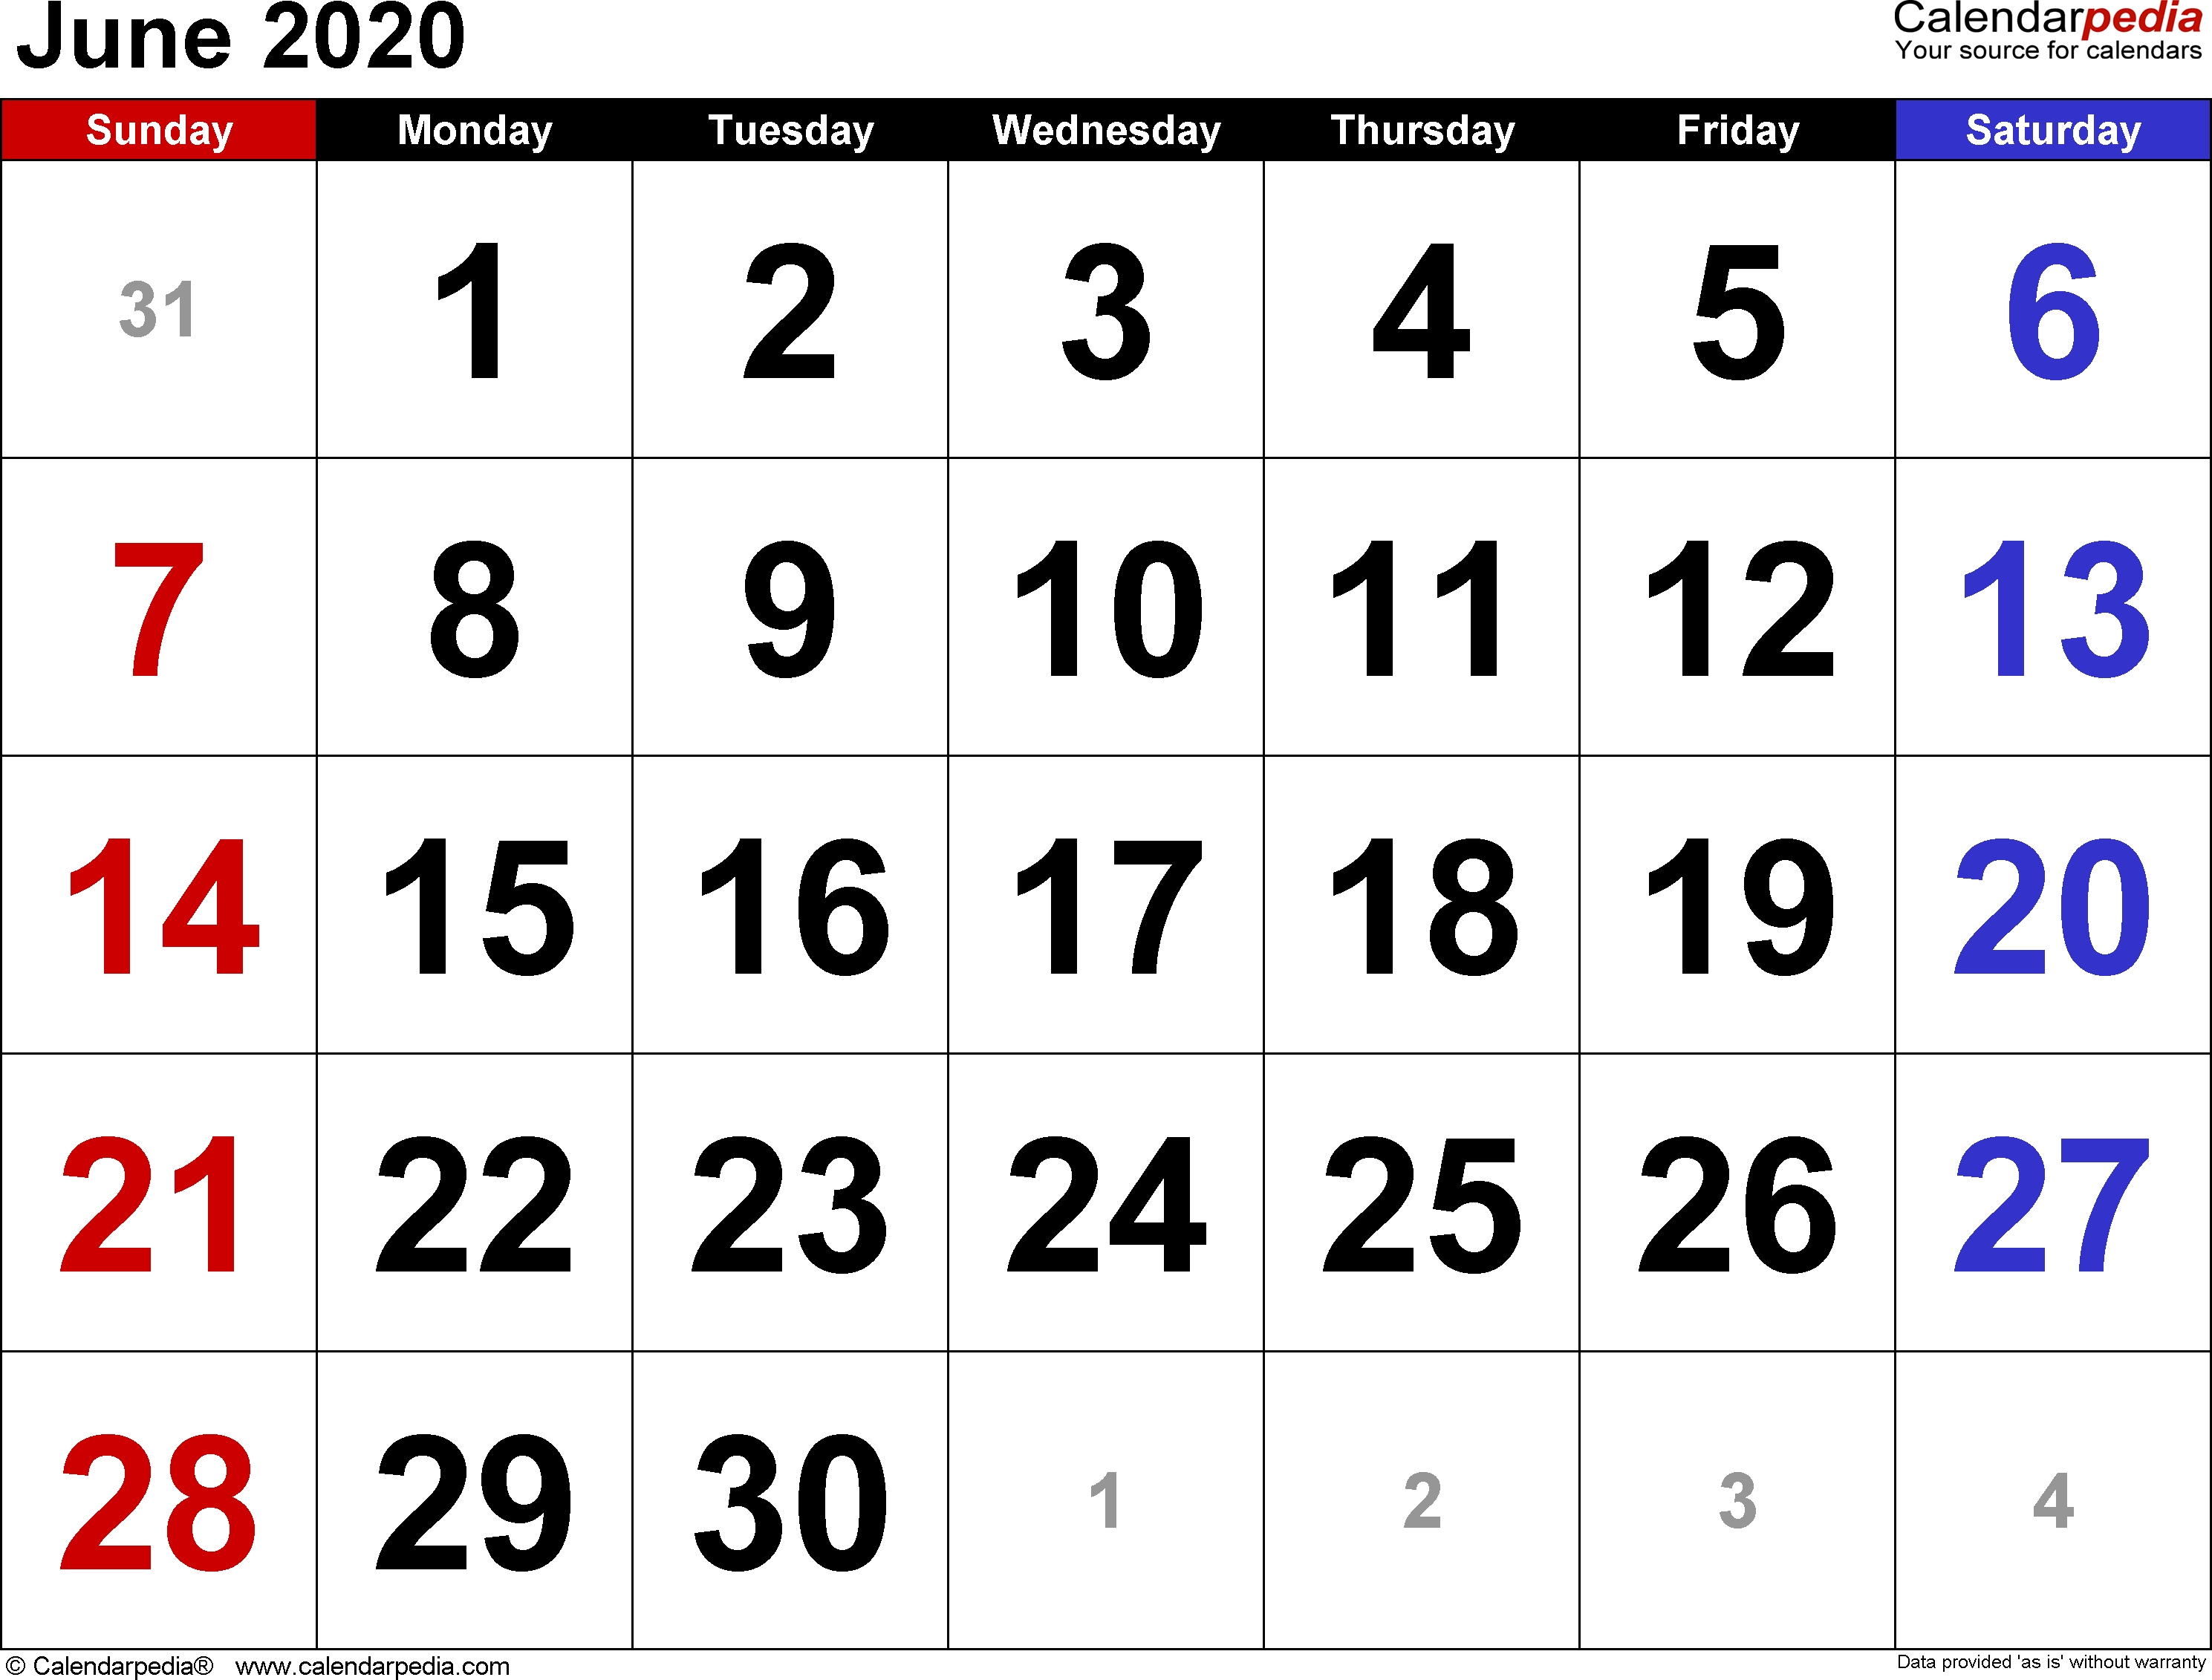 June 2020 Calendars For Word, Excel & Pdf